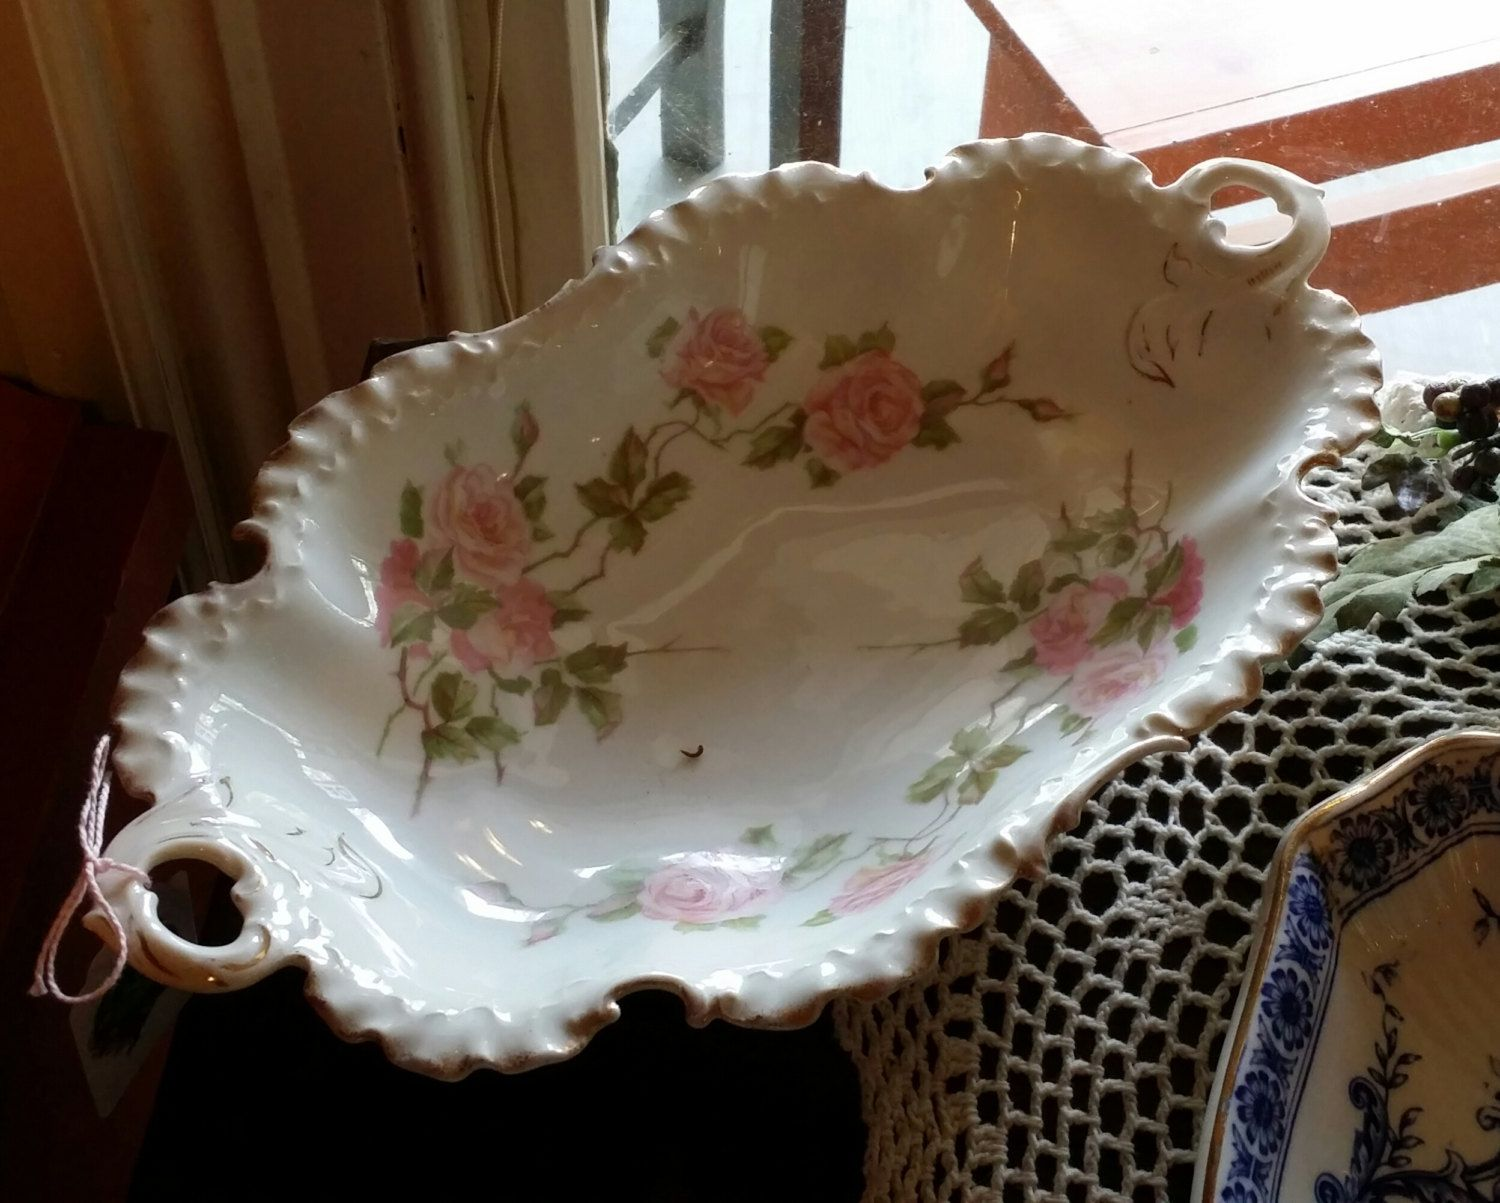 Vintage Rosenthal China Serving Dish with Handles Pink Roses and